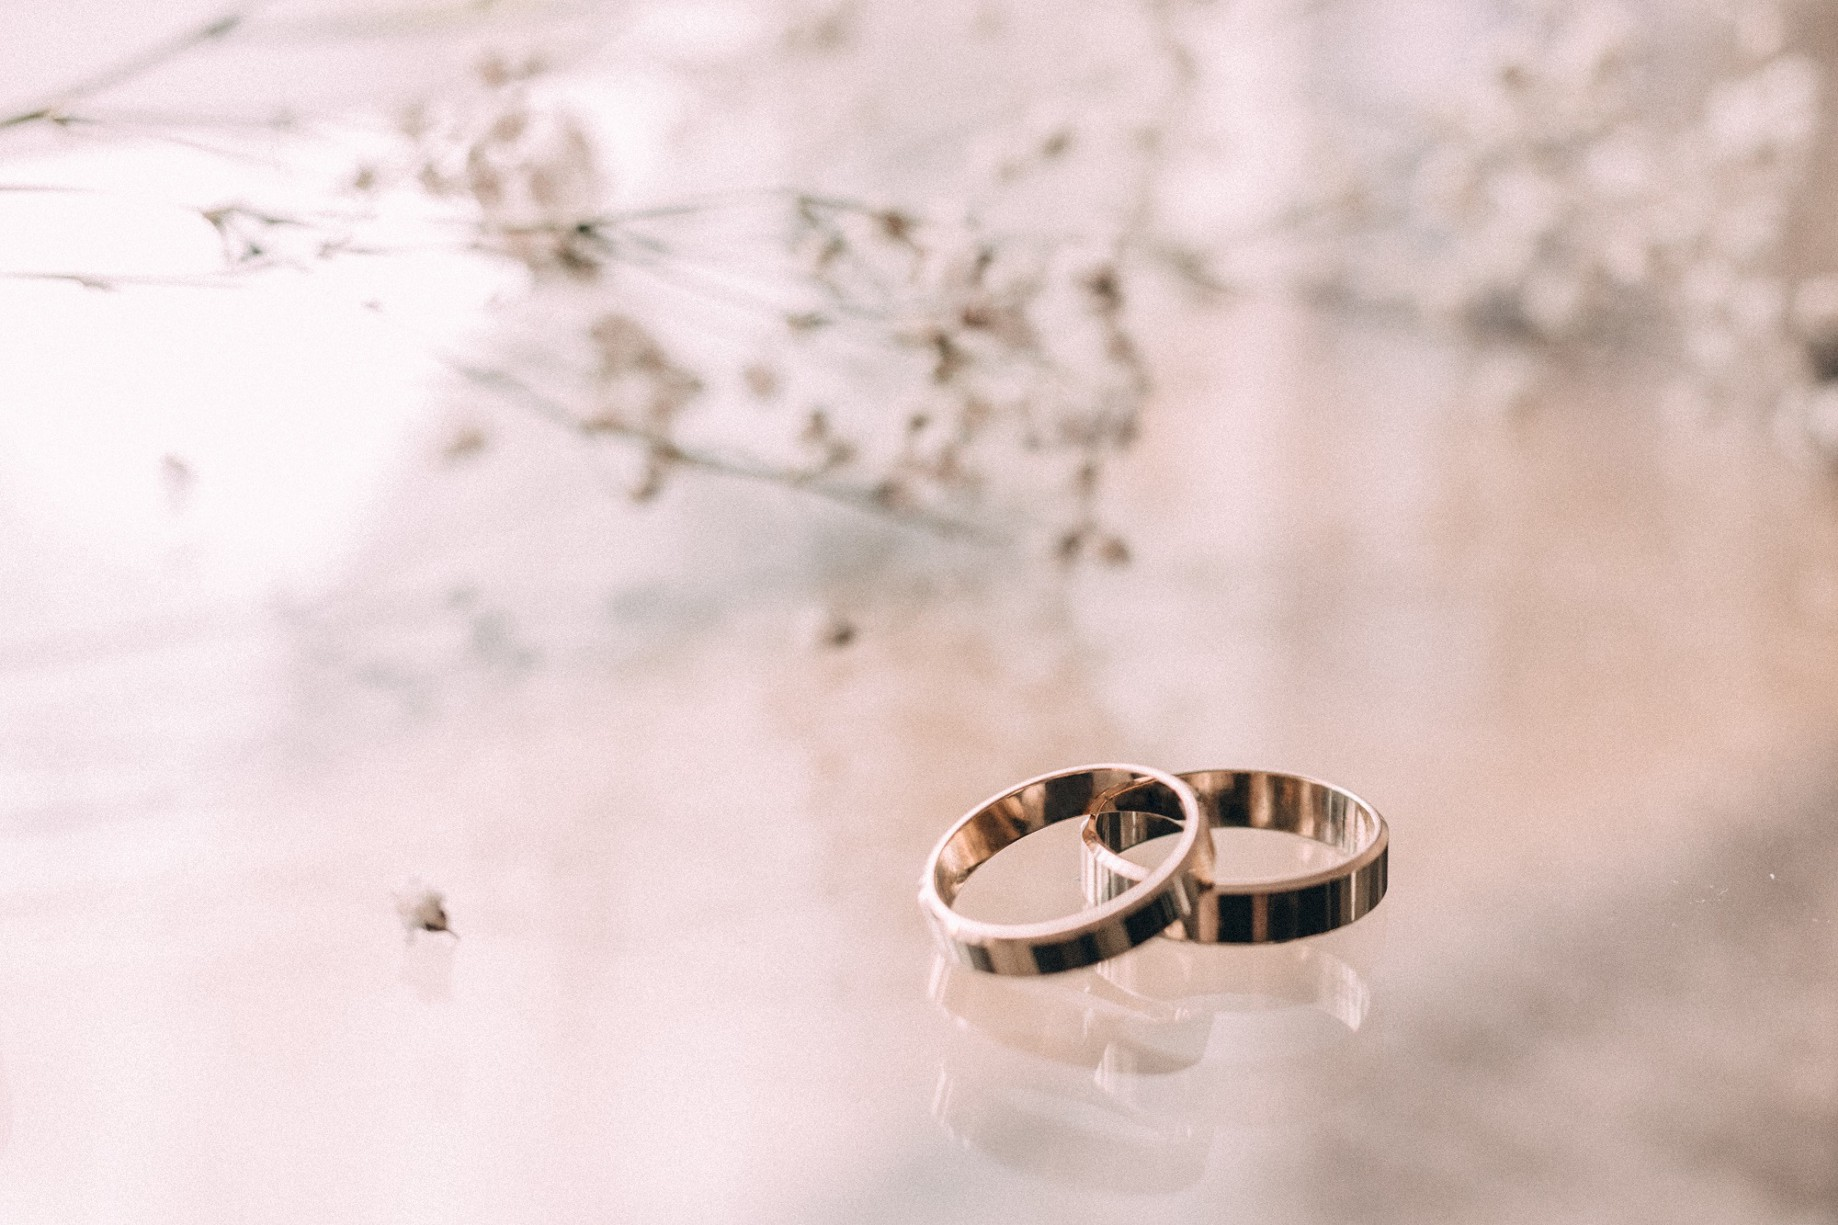 46326eeb4 How Much to Spend on an Engagement Ring? - Dr. Robert Burriss - Medium